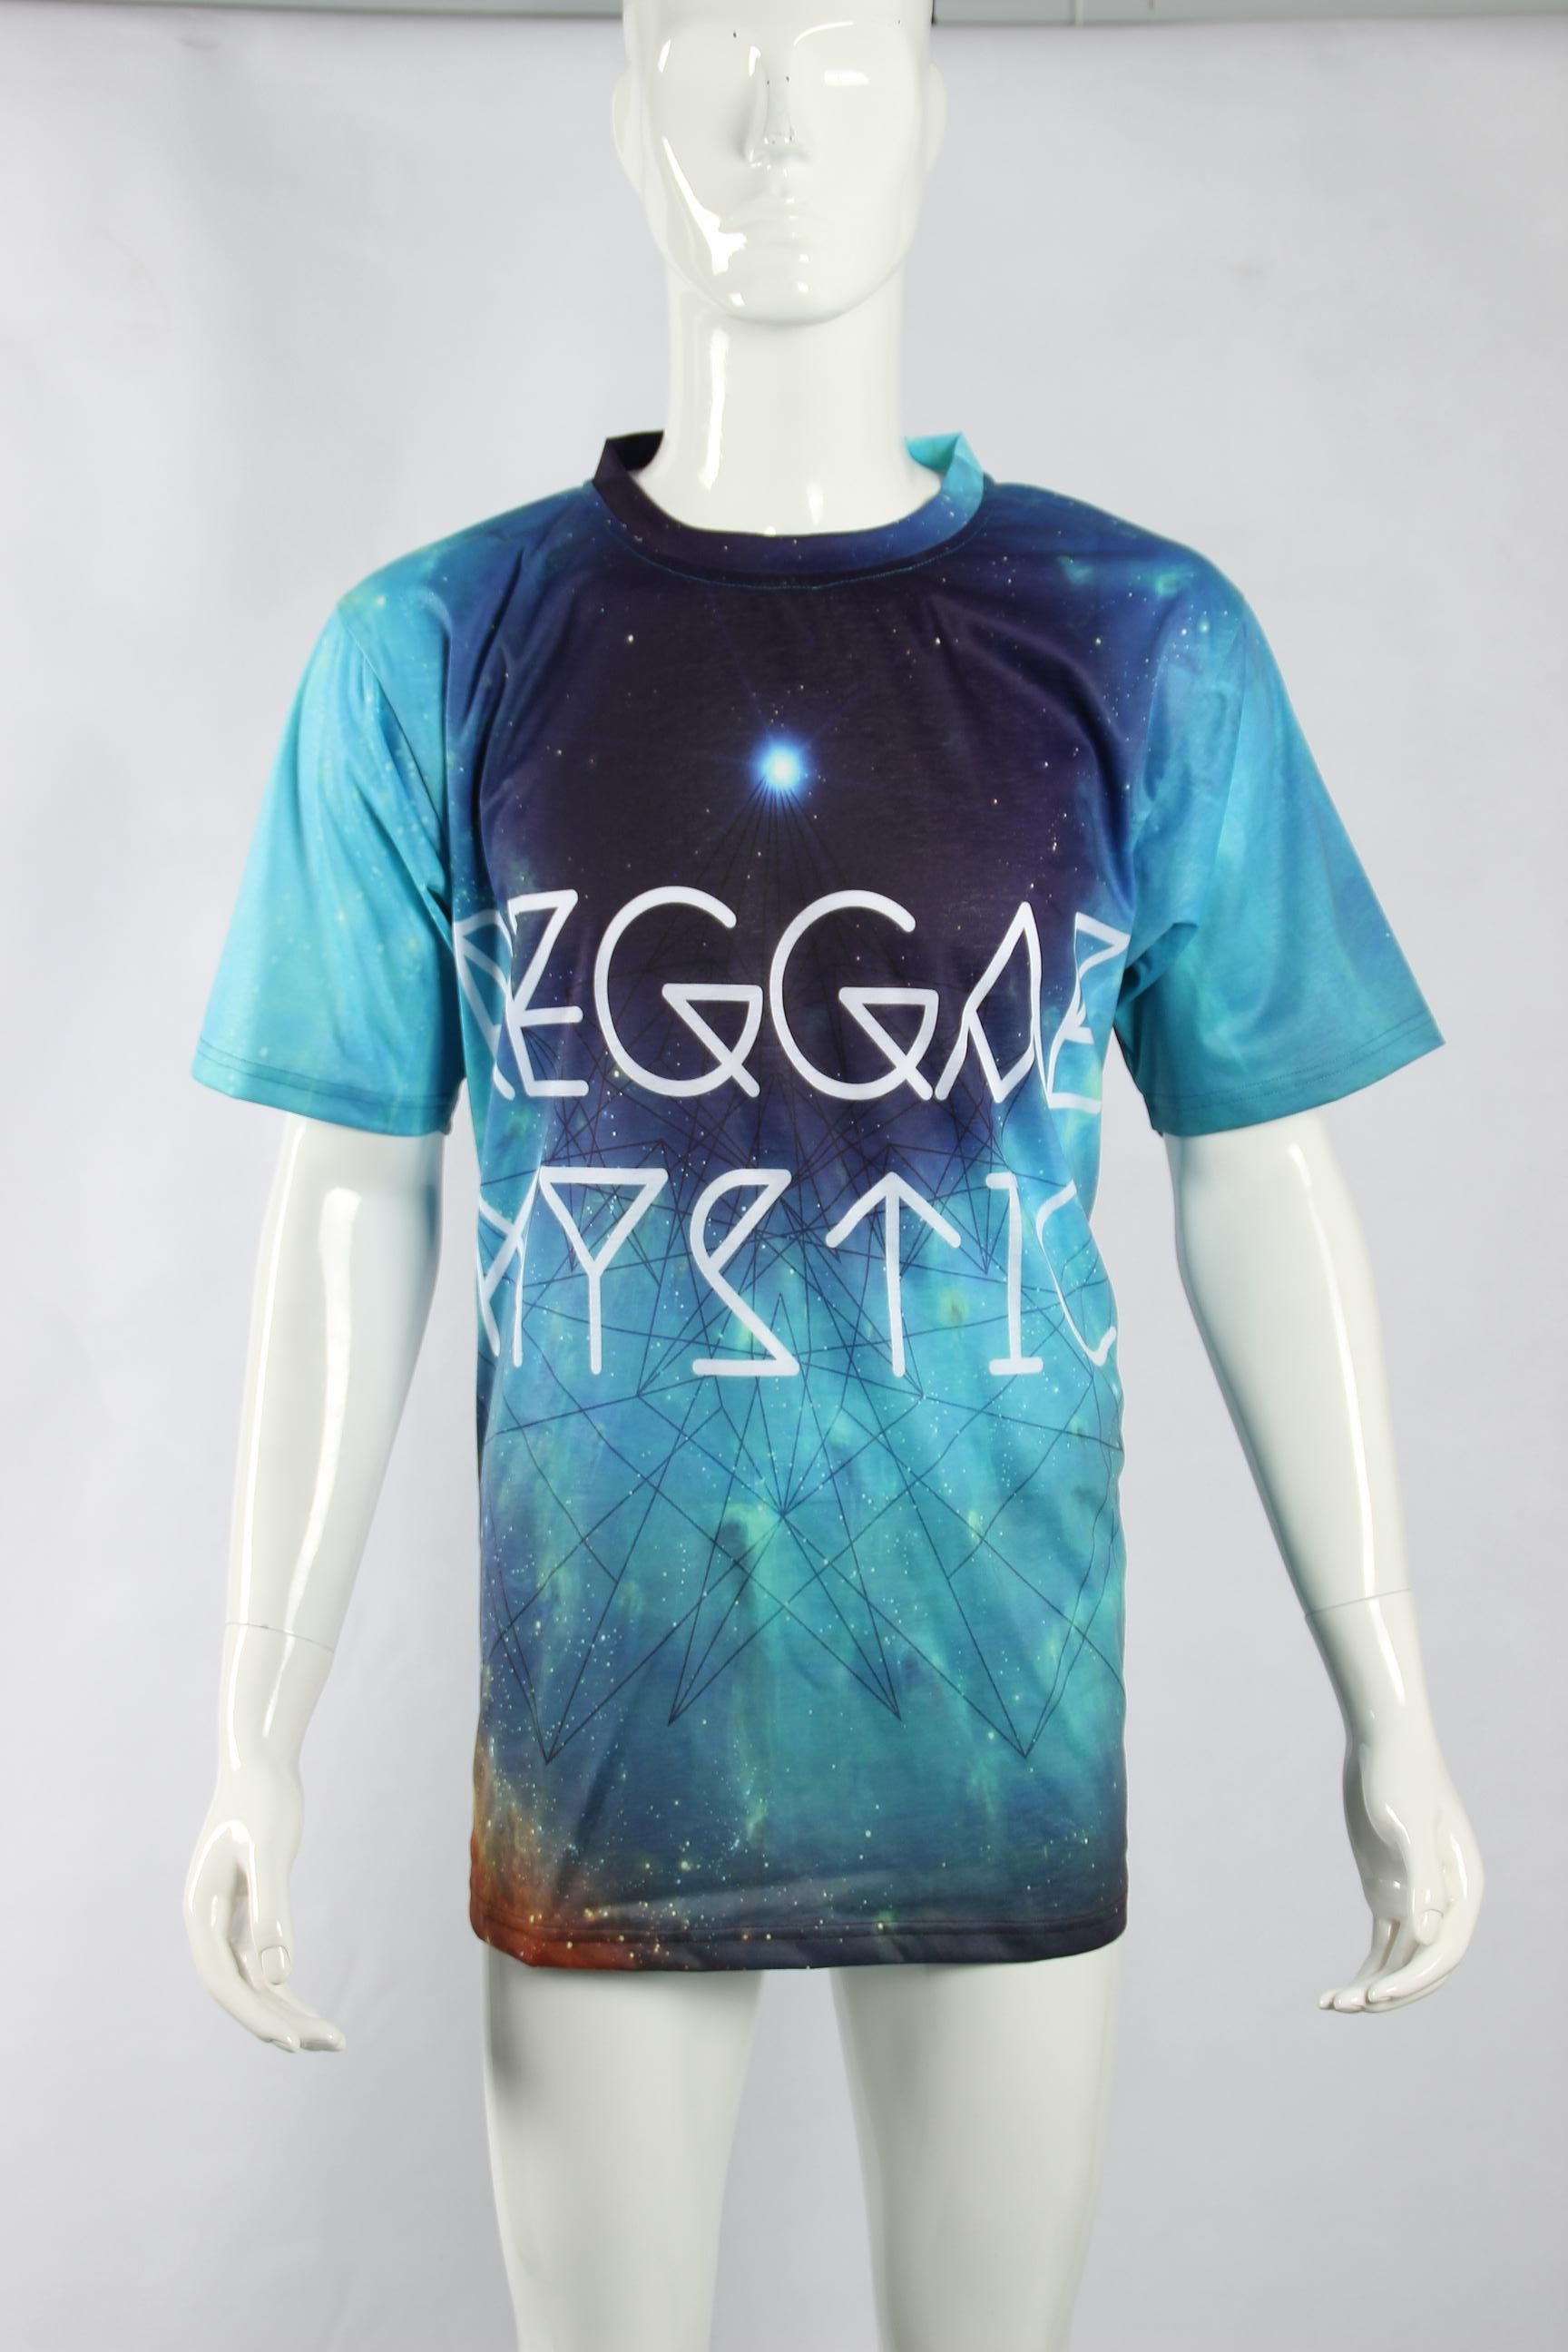 Lets Get It With Custom Cut Sew Dye Sublimated T Shirts Dye